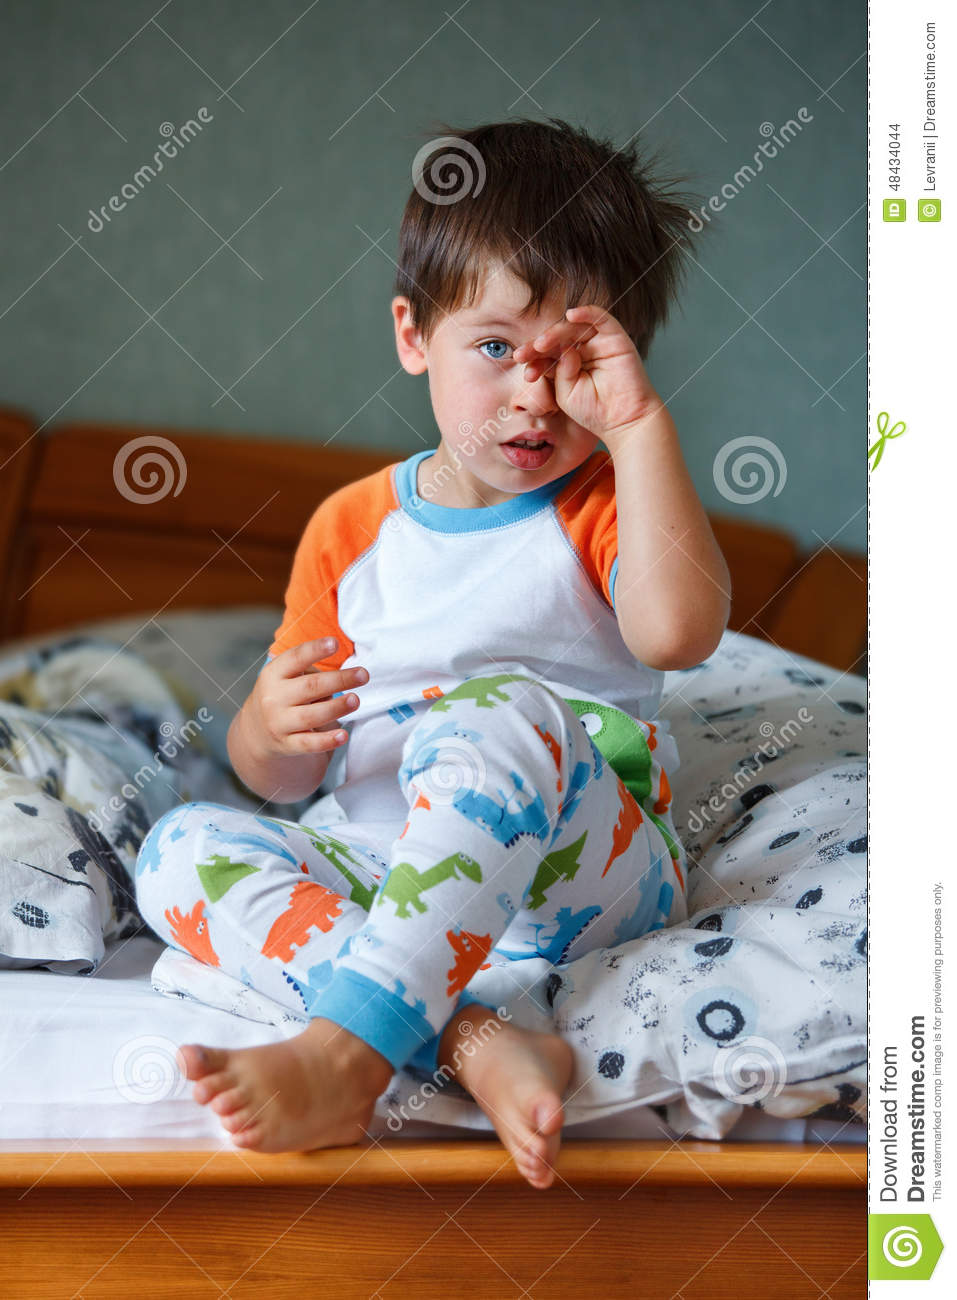 Cute Little Boy In Pajamas Stock Photo - Image: 48434044